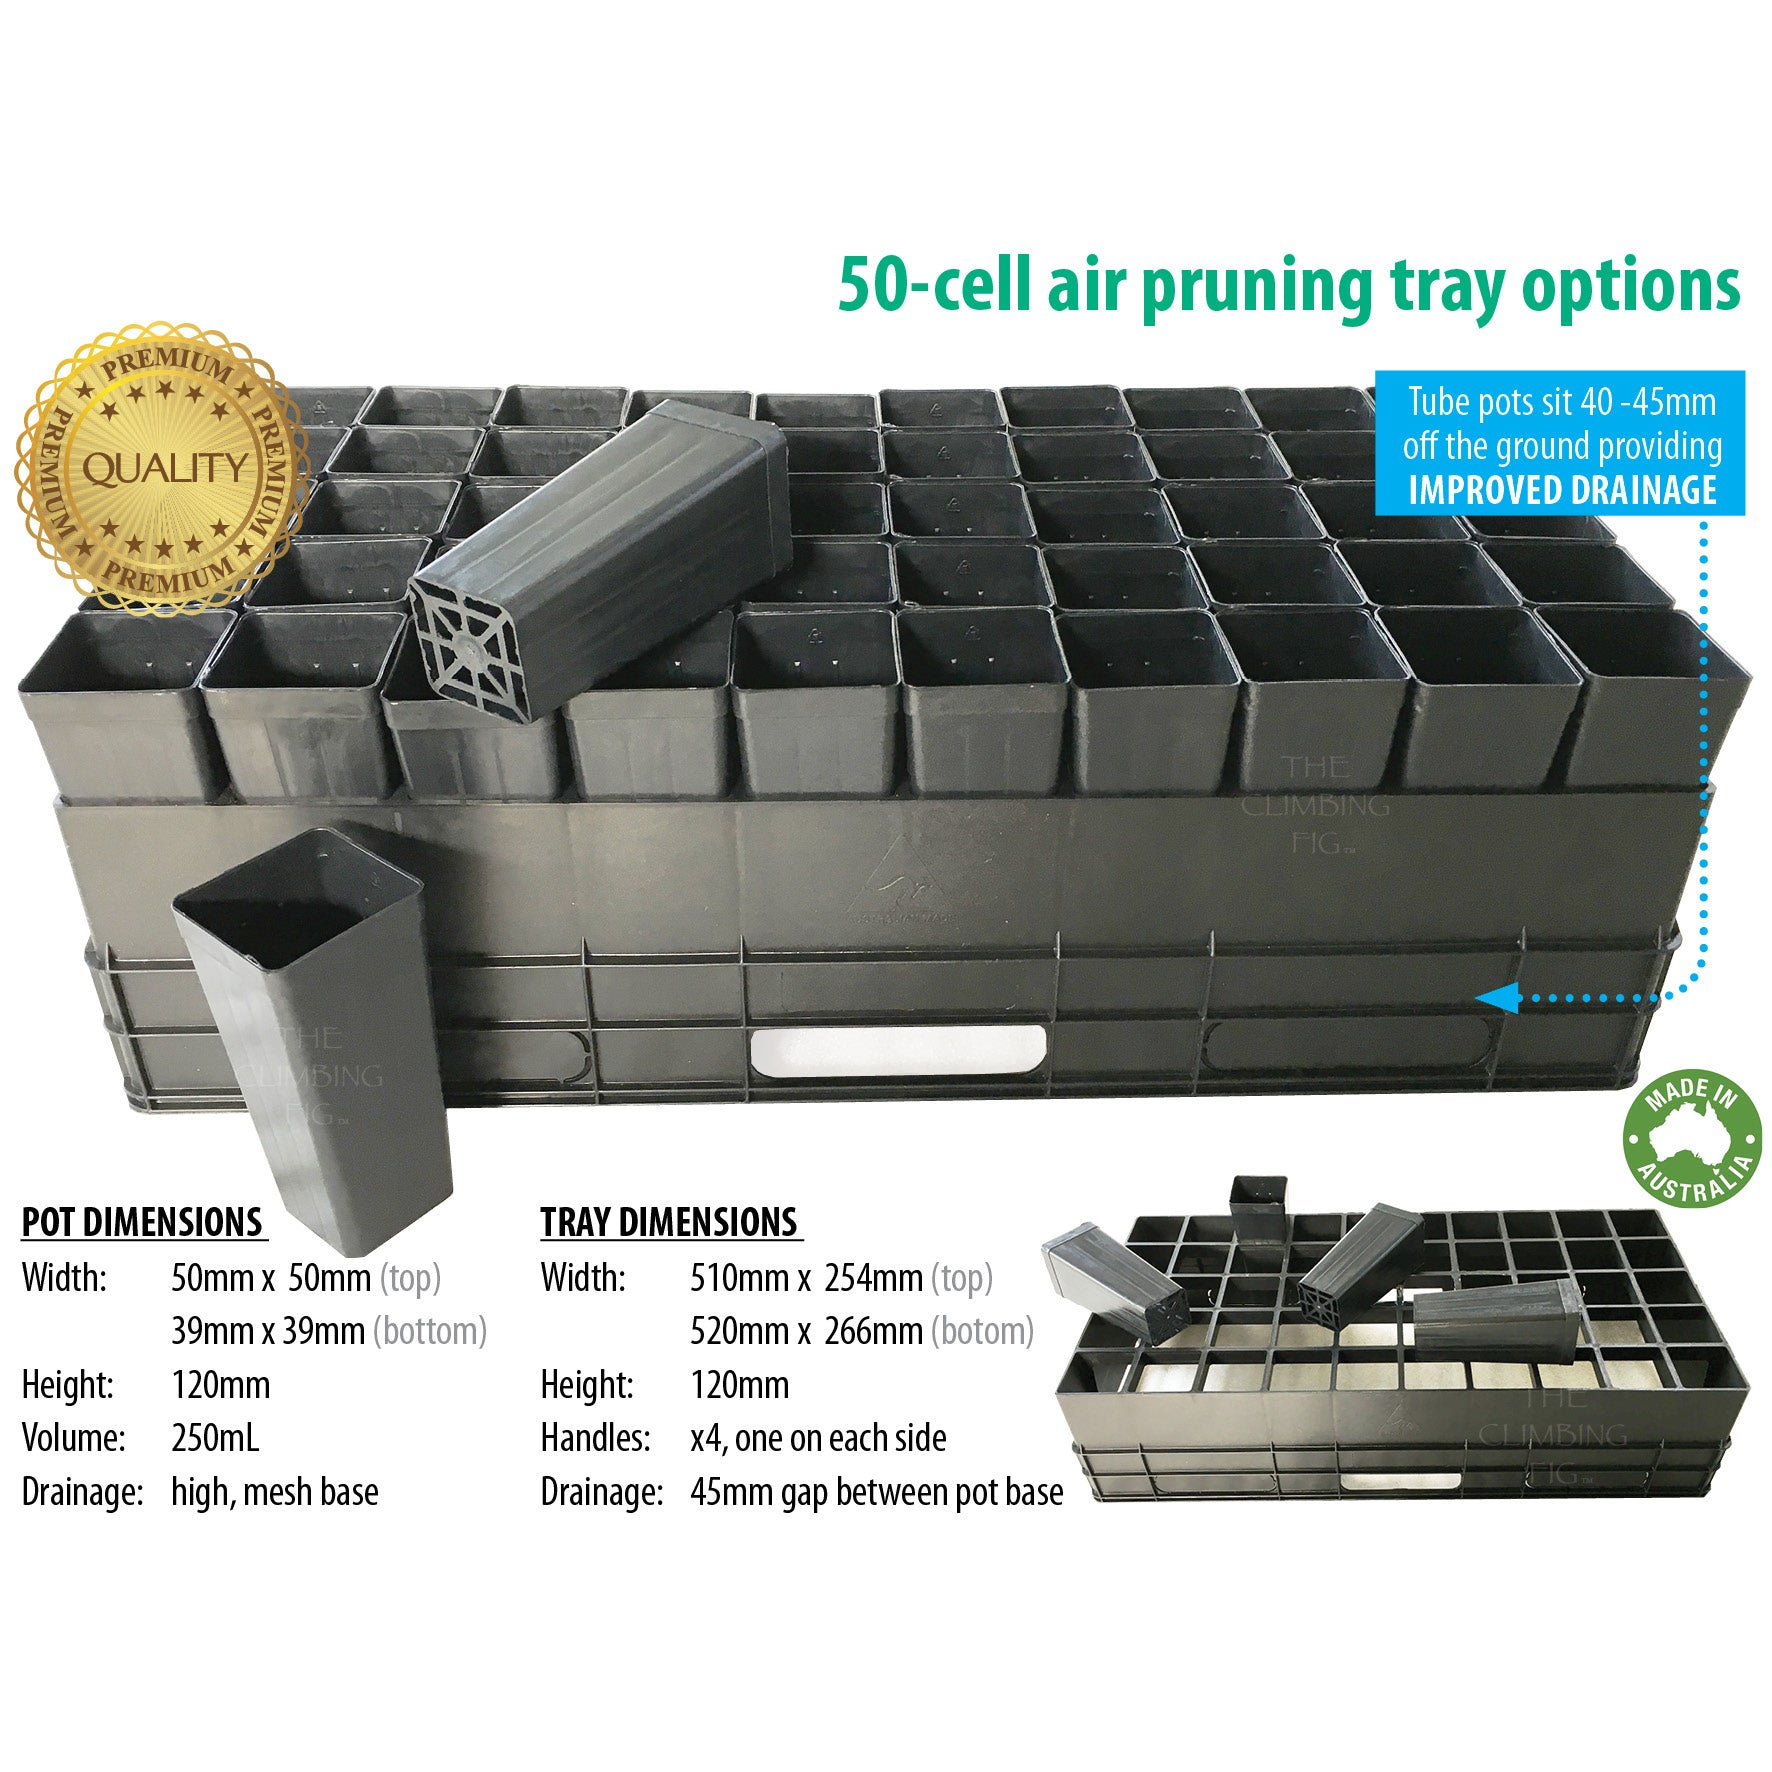 50-Cell Air-Pruning Trays with 50mm Native Tube Pots. Plant forestry propagation